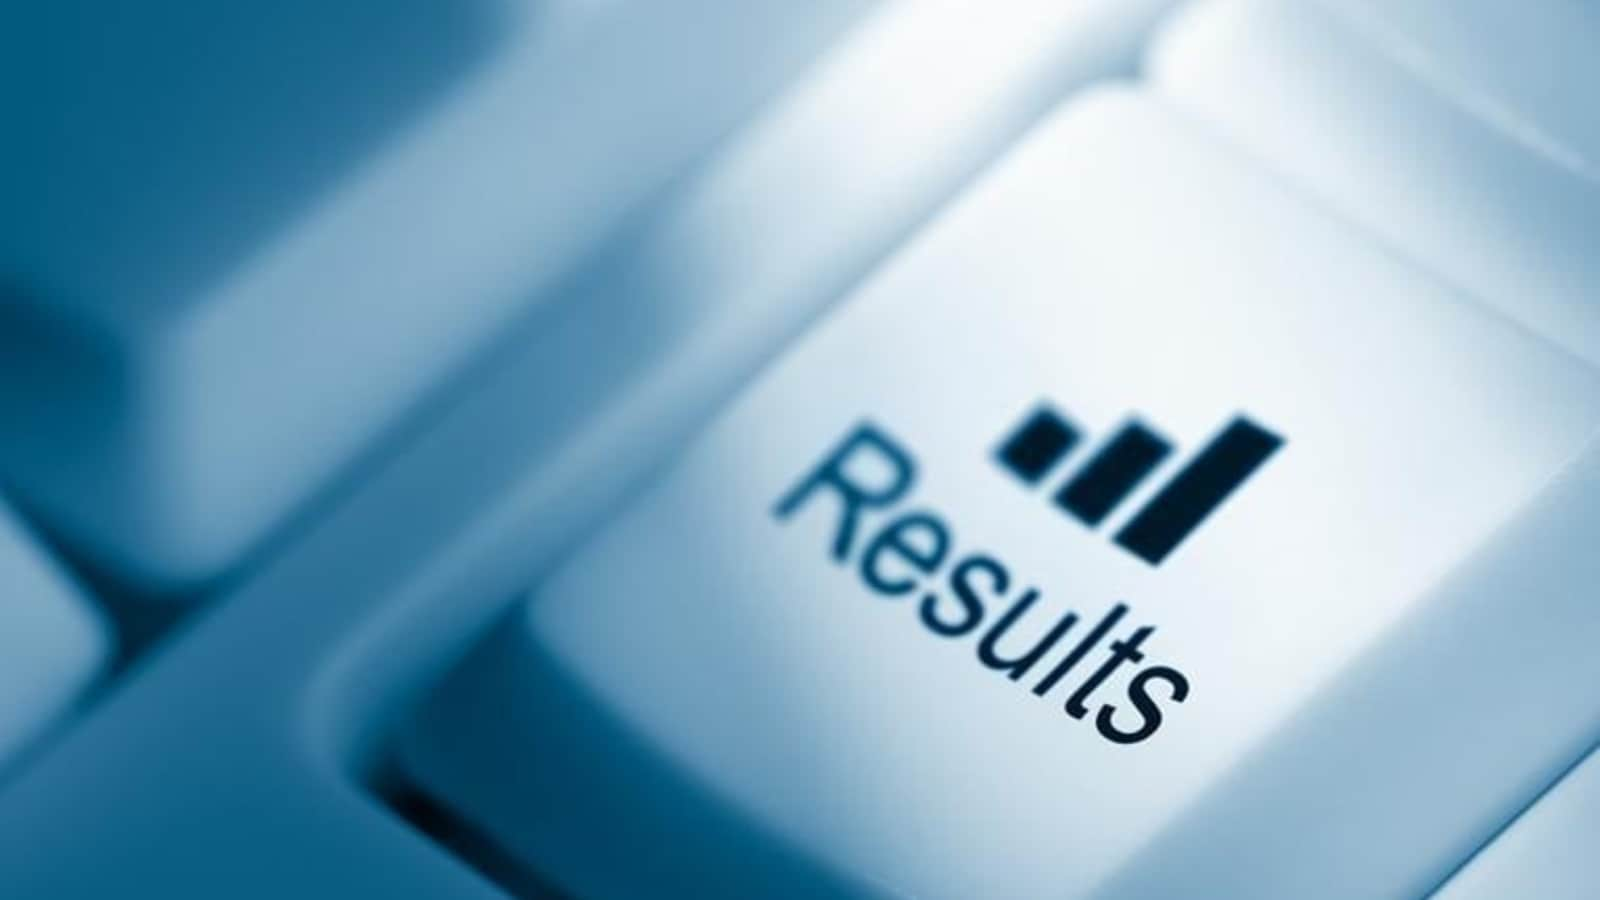 MP Board Class 10 Result 2021: MPBSE 10th Result declared at mpresults.nic.in